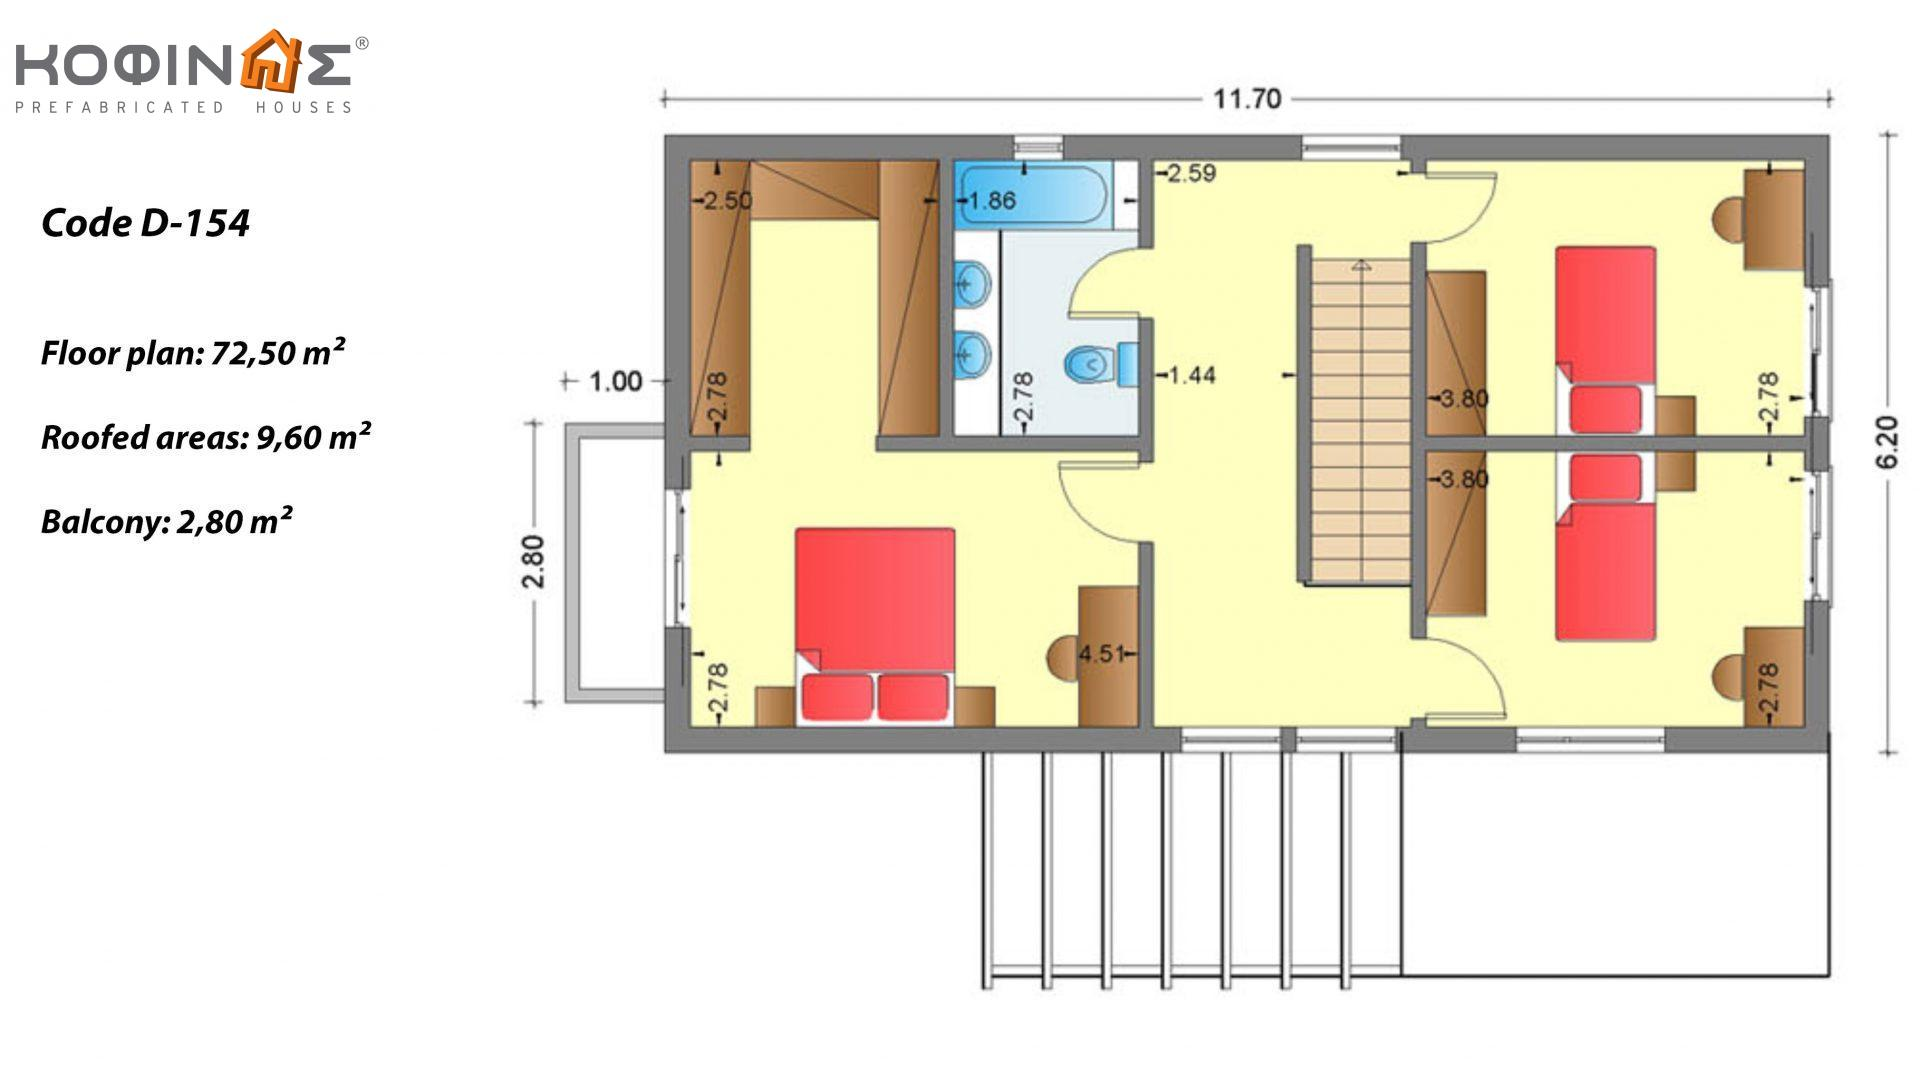 2-story house D-154, total surface of 154,70 m²,roofed areas 18.15 m²,balconies 2.80 m²